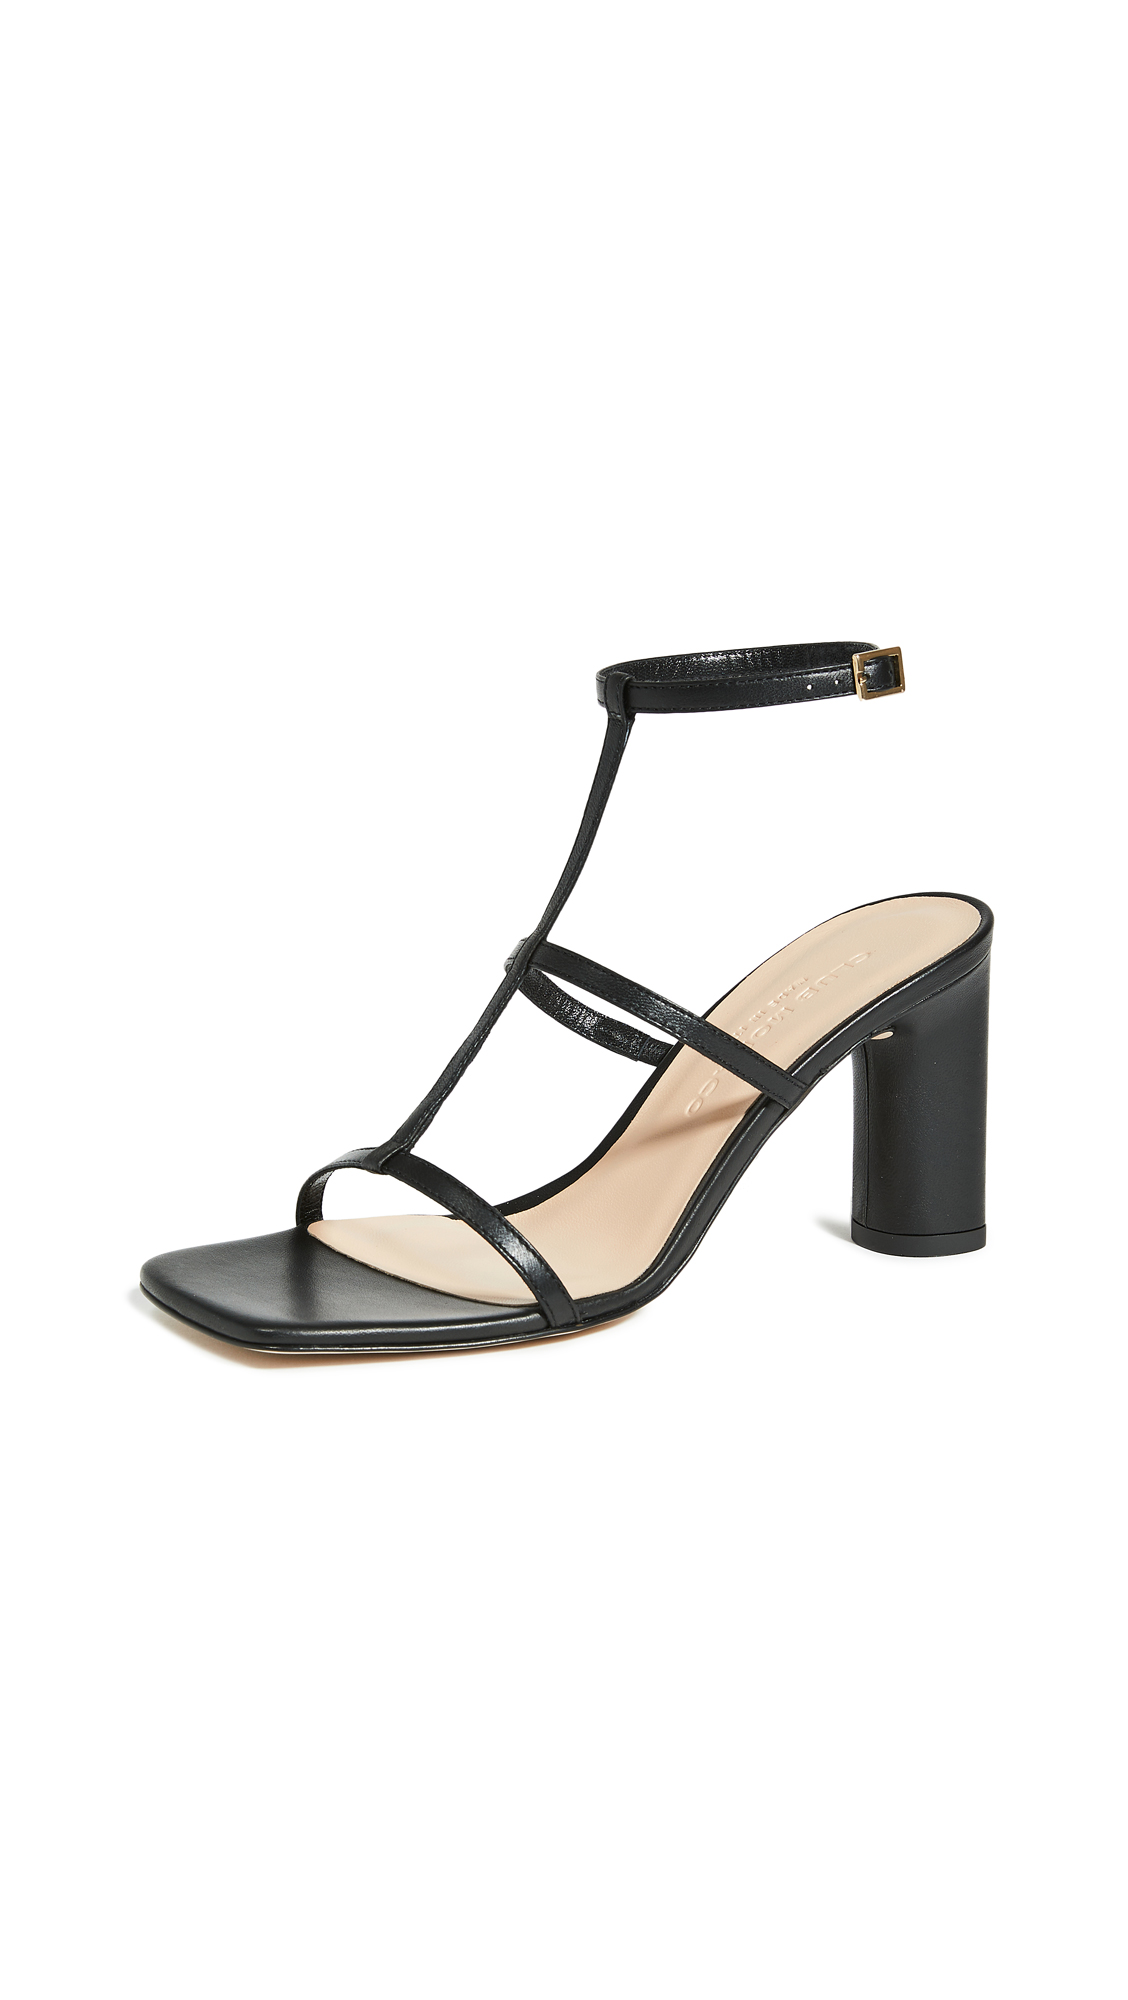 Buy Club Monaco Catiey Heel Sandals online, shop Club Monaco